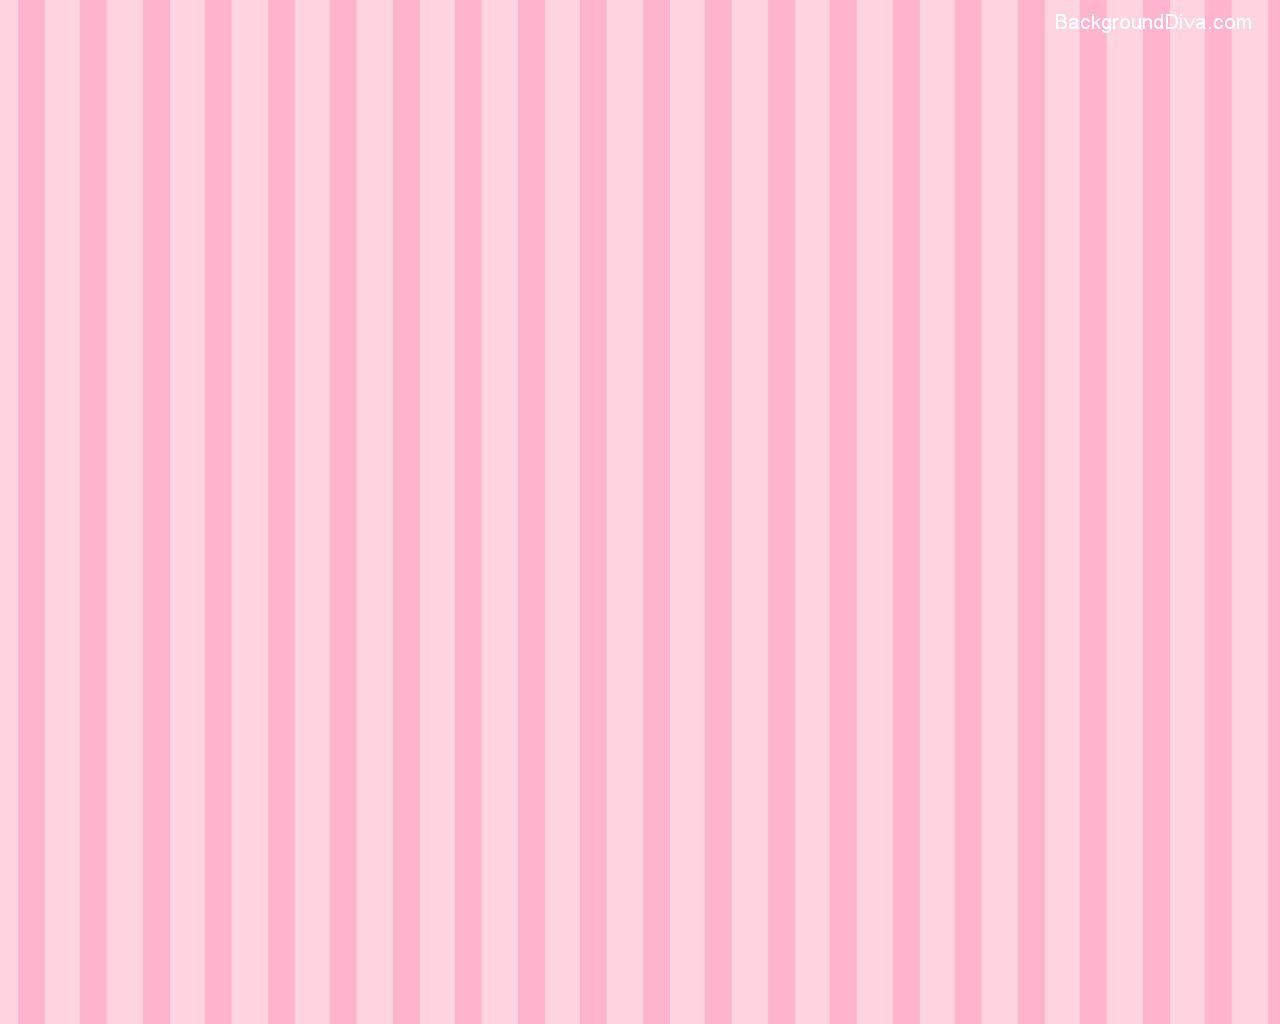 blue and pink sparkle wallpaper